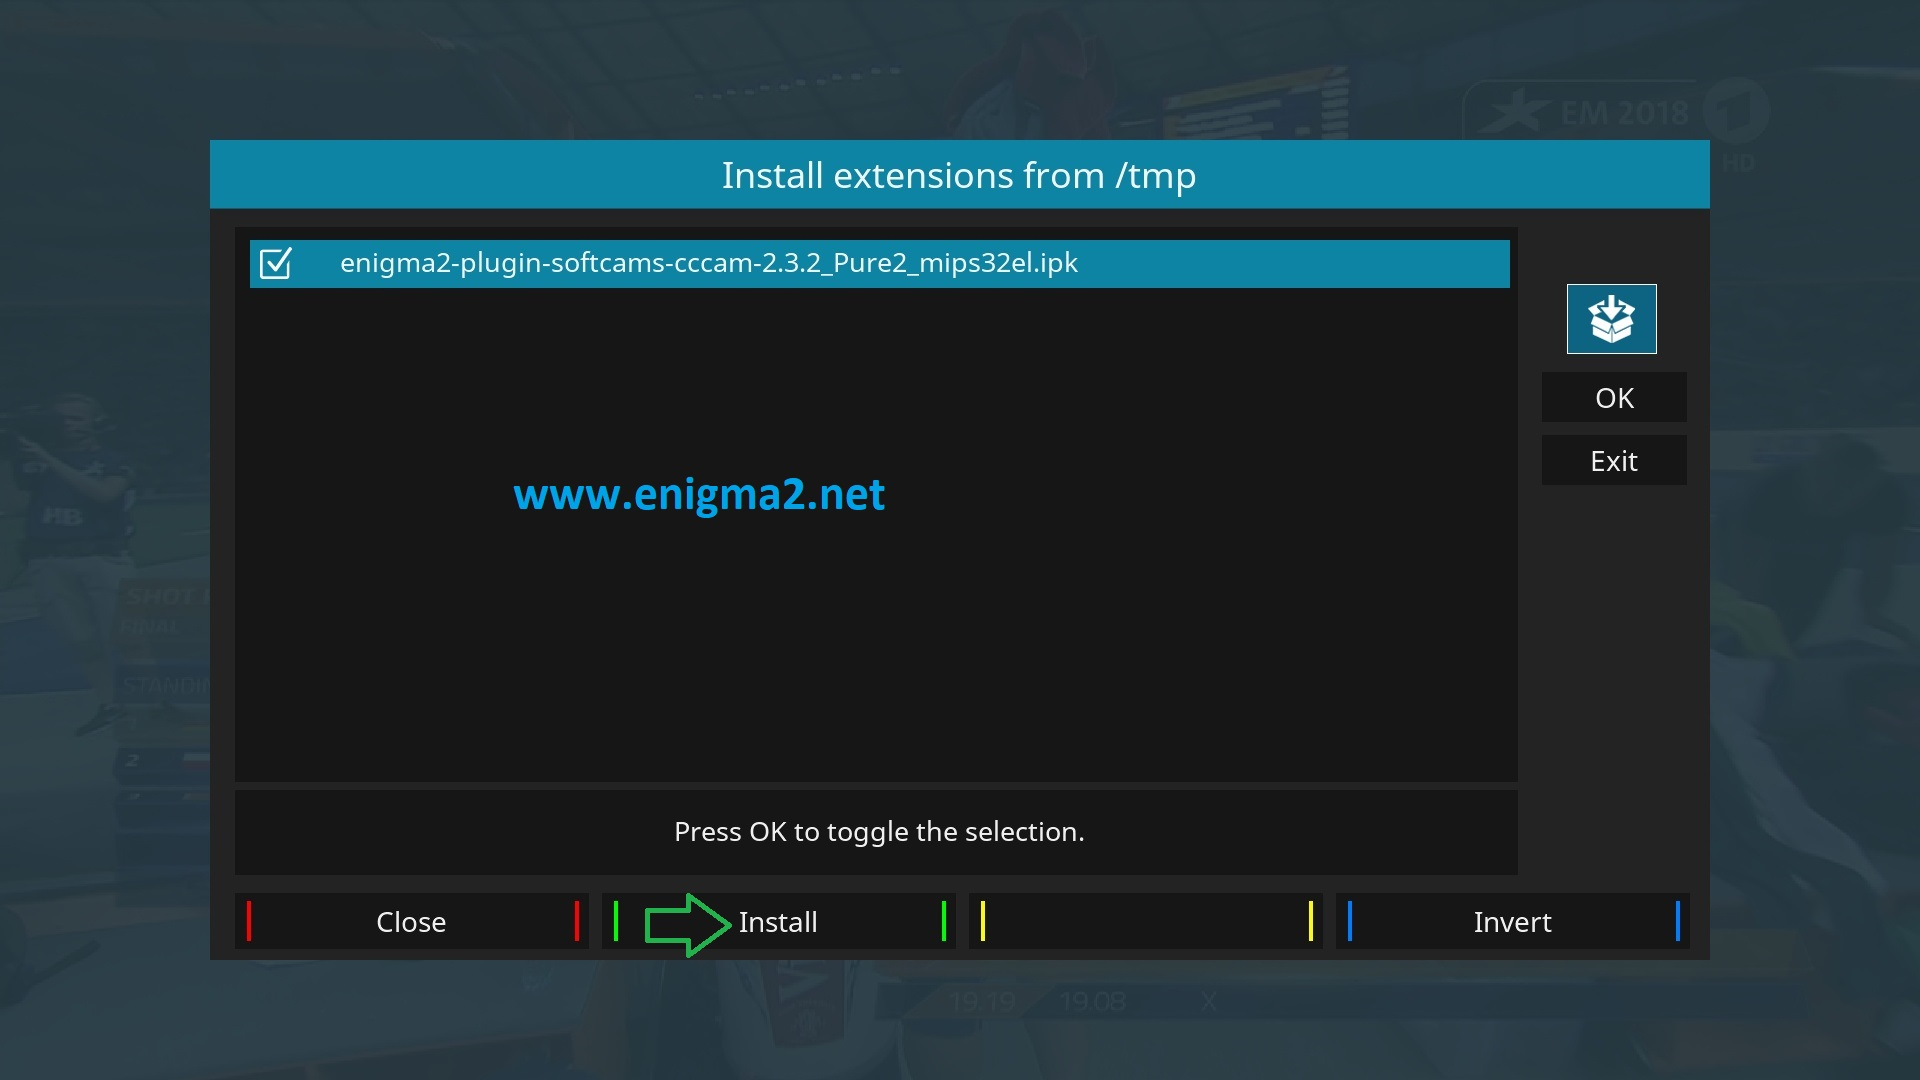 TUTORIAL] How to install and configure CCCAM on PureE2 – ENIGMA2